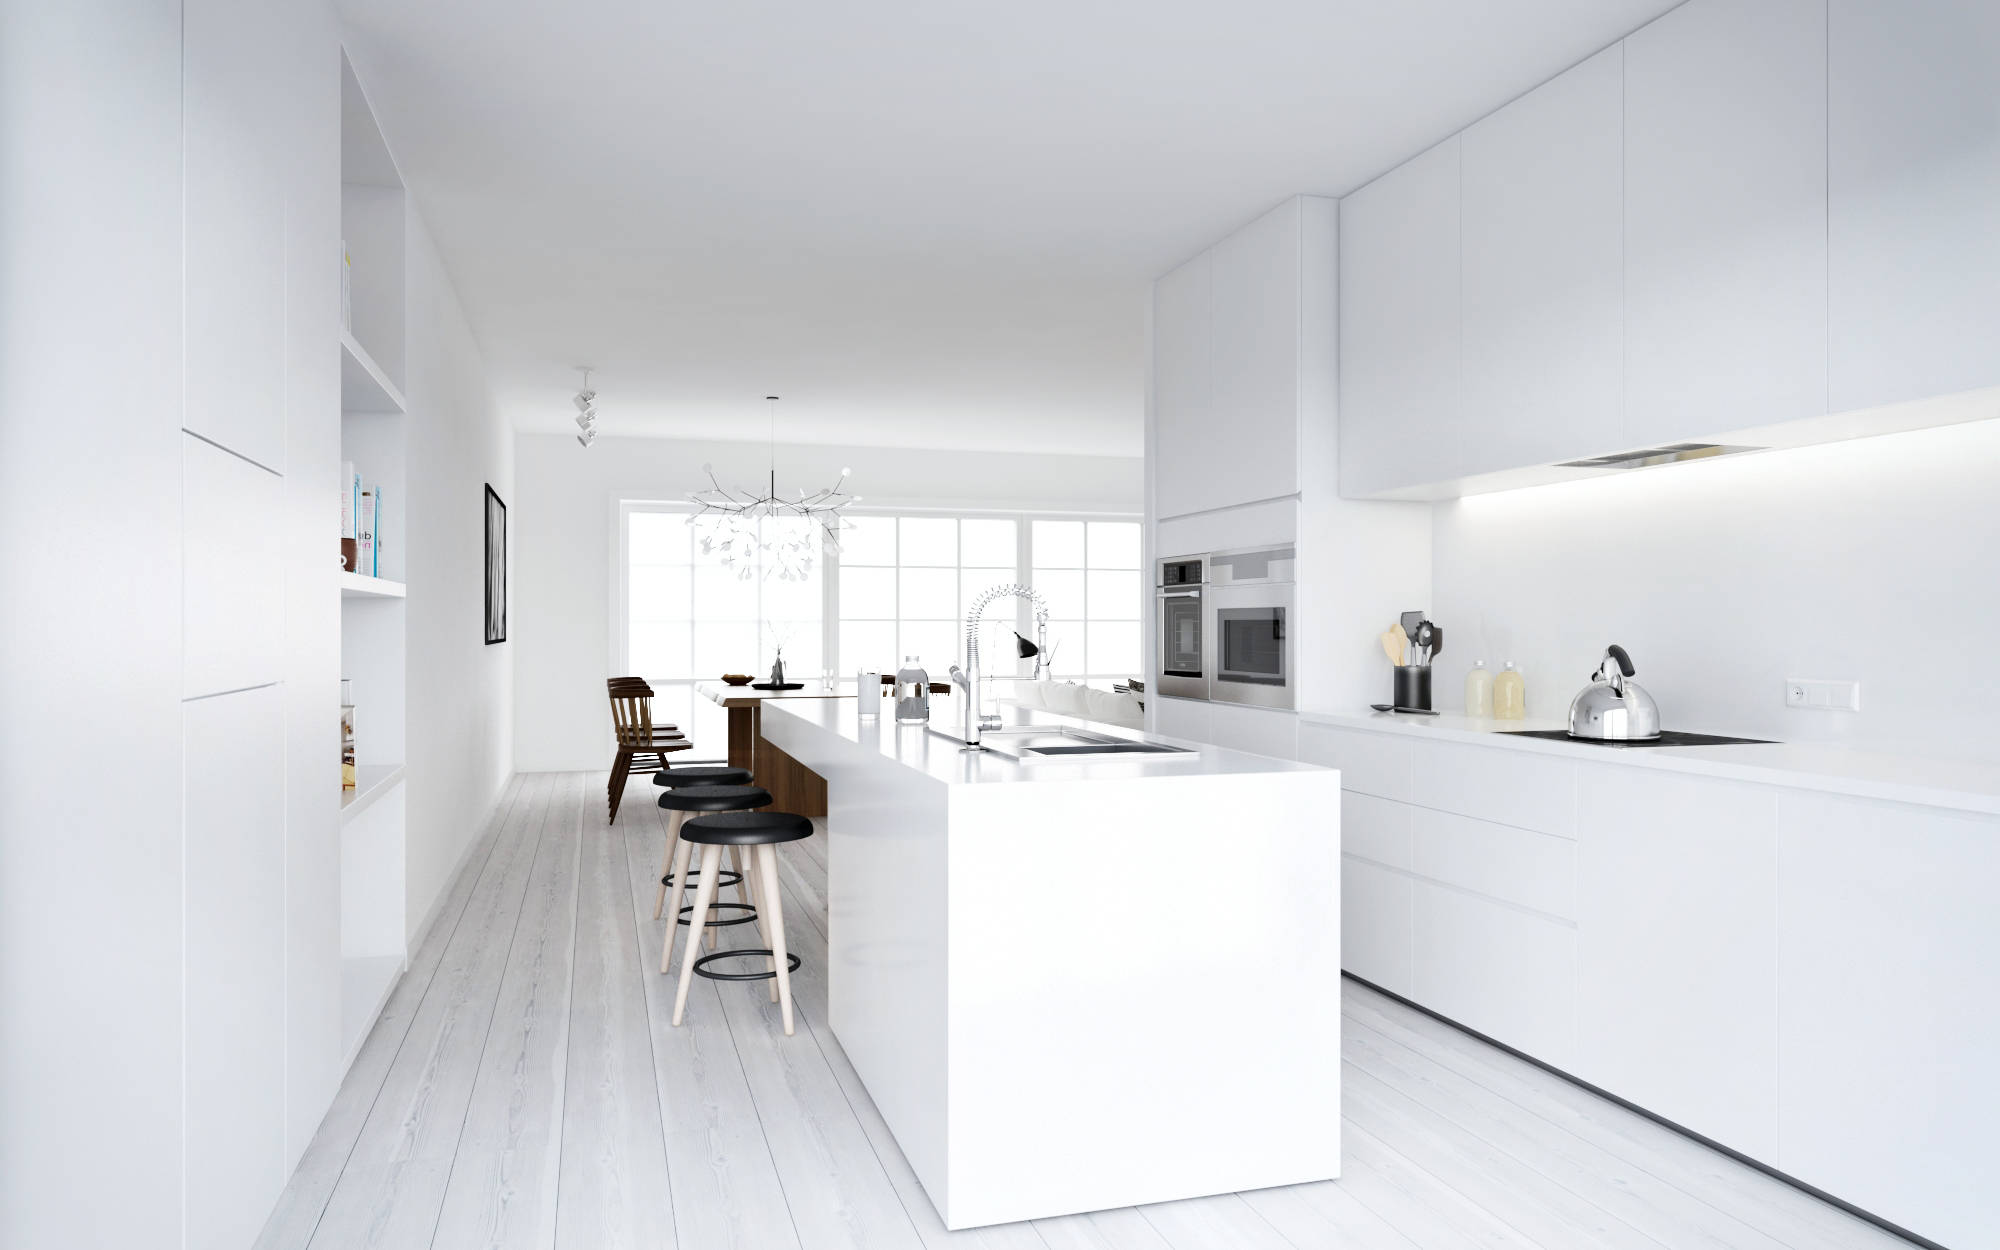 Atdesign nordic style minimalist kitchen in white White interior design